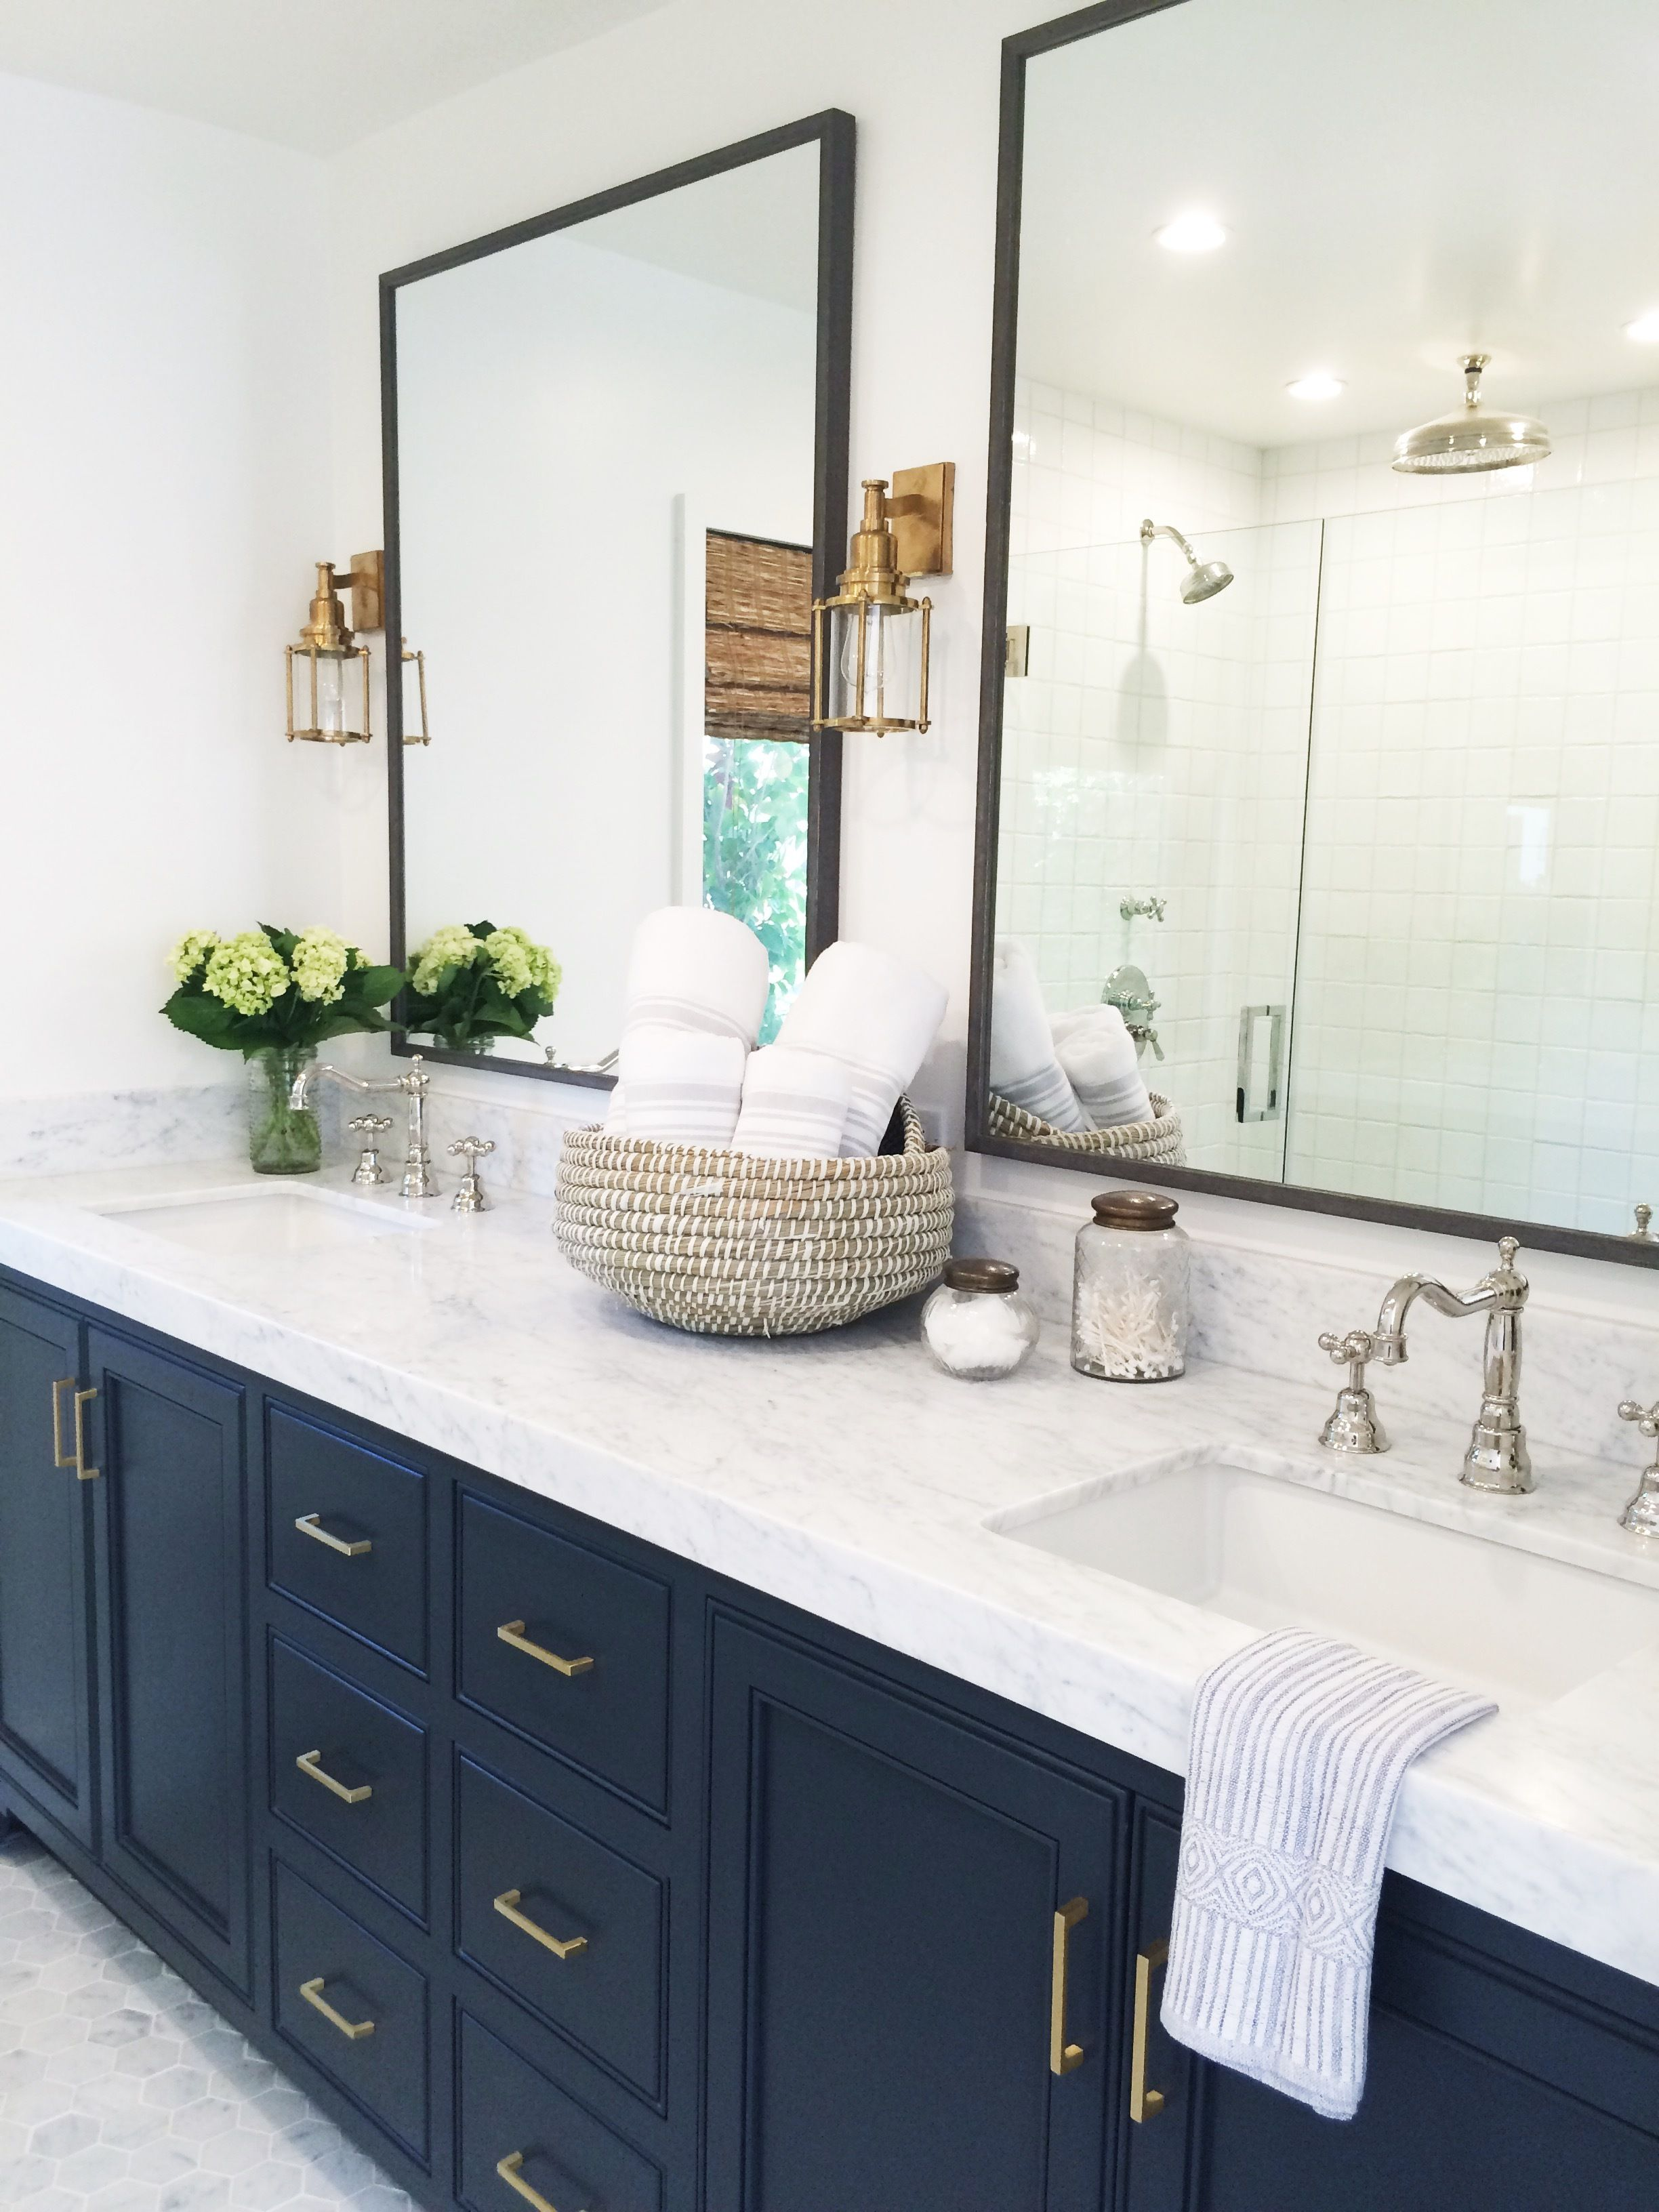 See The Homes That Nailed 2017 S Best Design Trends Bathroom Remodel Master Farmhouse Master Bathroom Small Bathroom Remodel